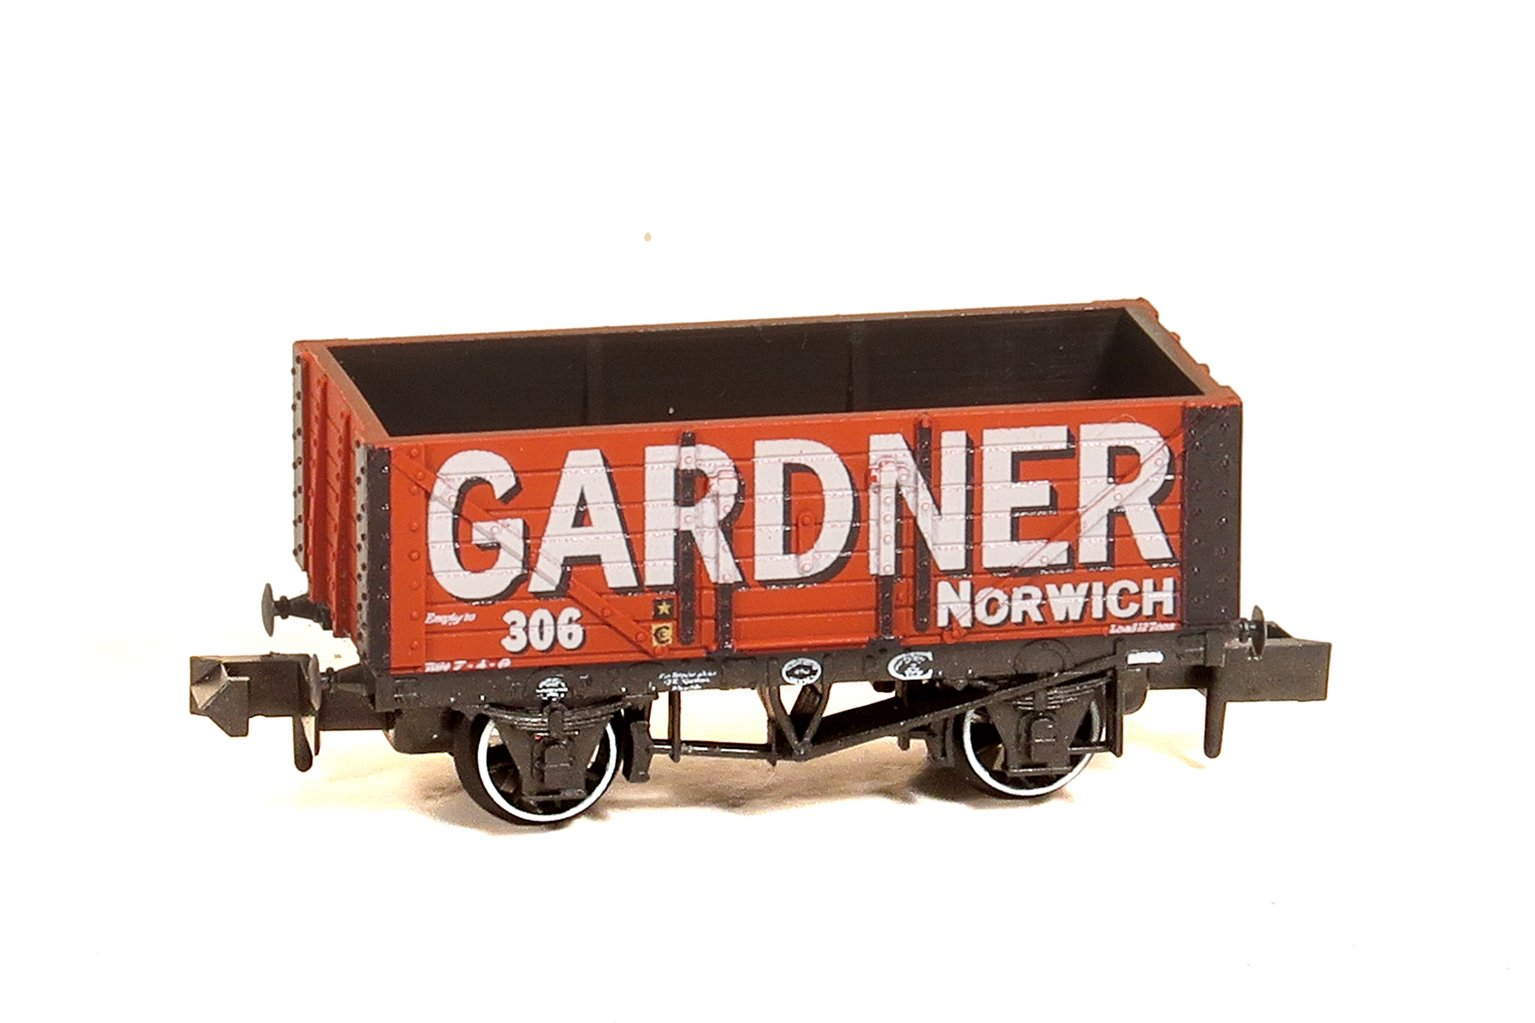 C. E. Gardner Coal Merchant